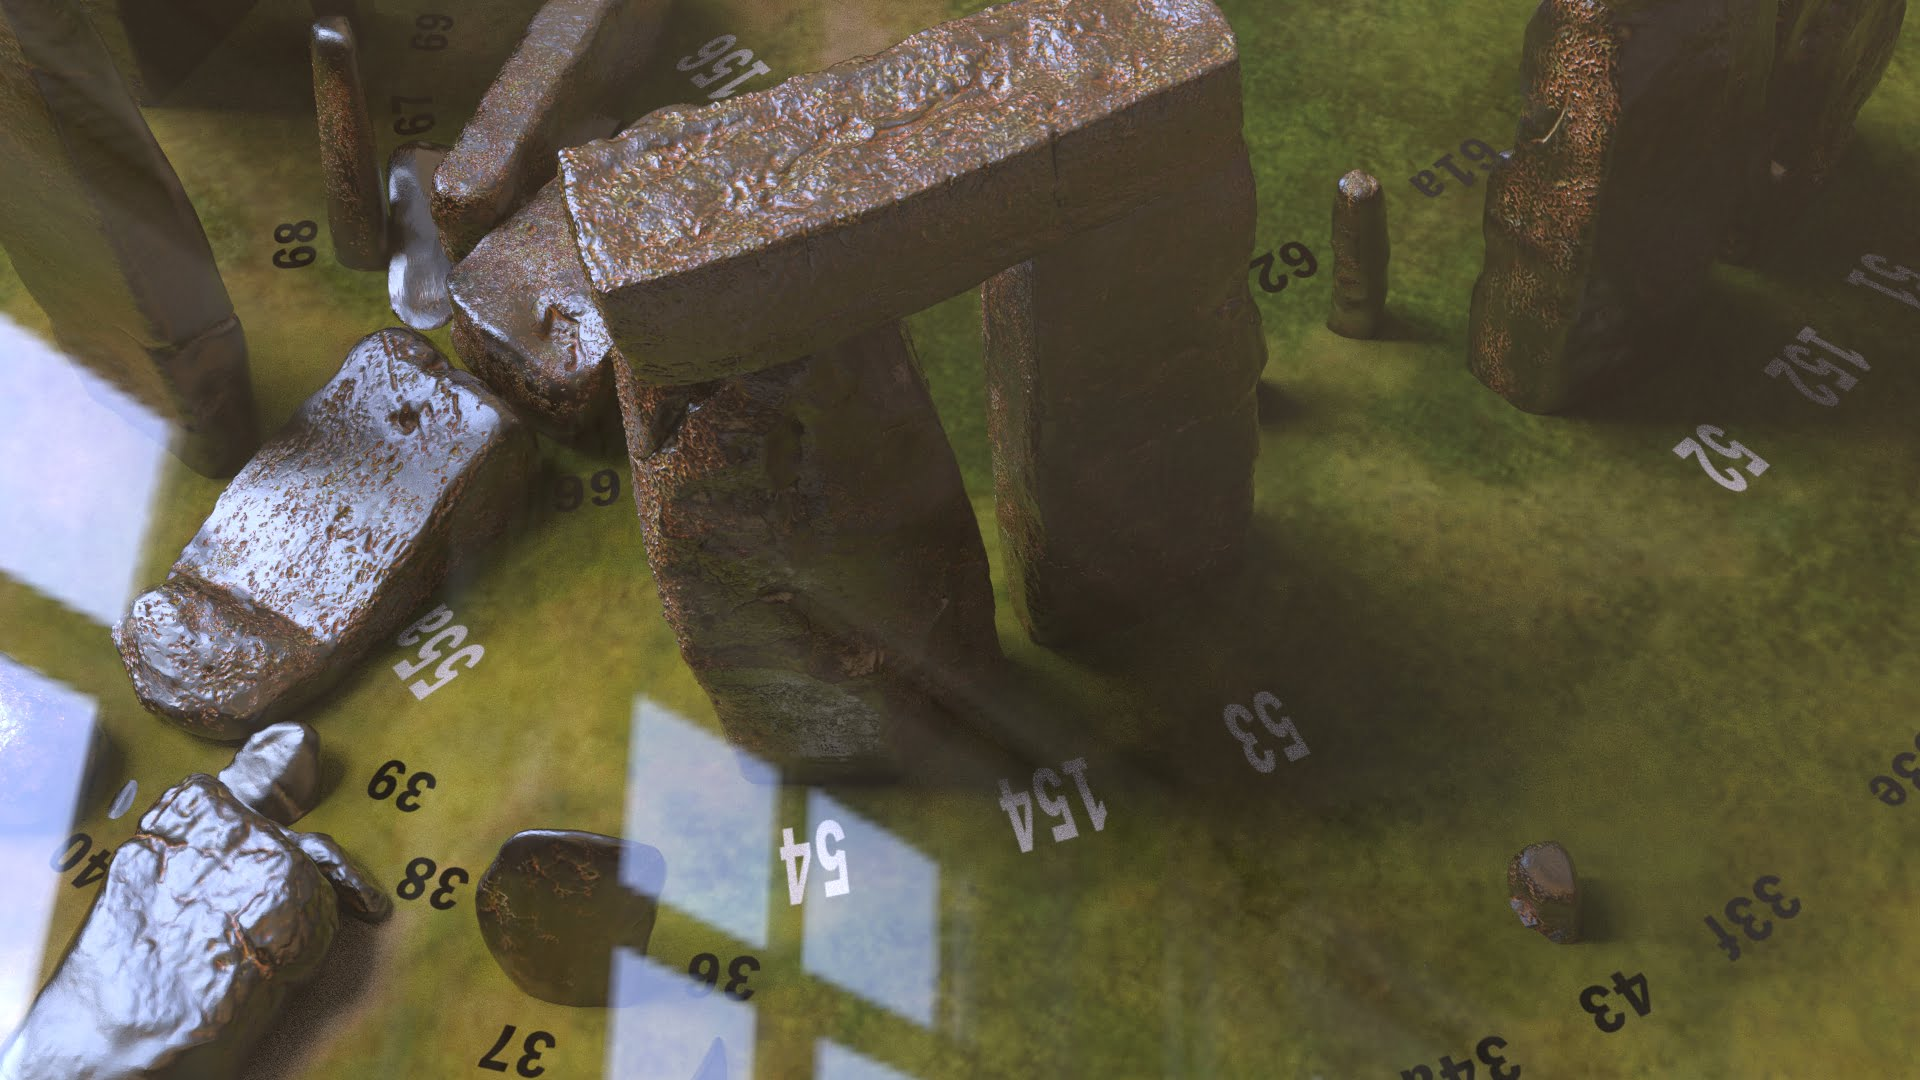 Buy Stonehenge Models: Rusted iron on grass Stonehenge model replica framed mounted and glazed 005  - 200th scale pick n mix -